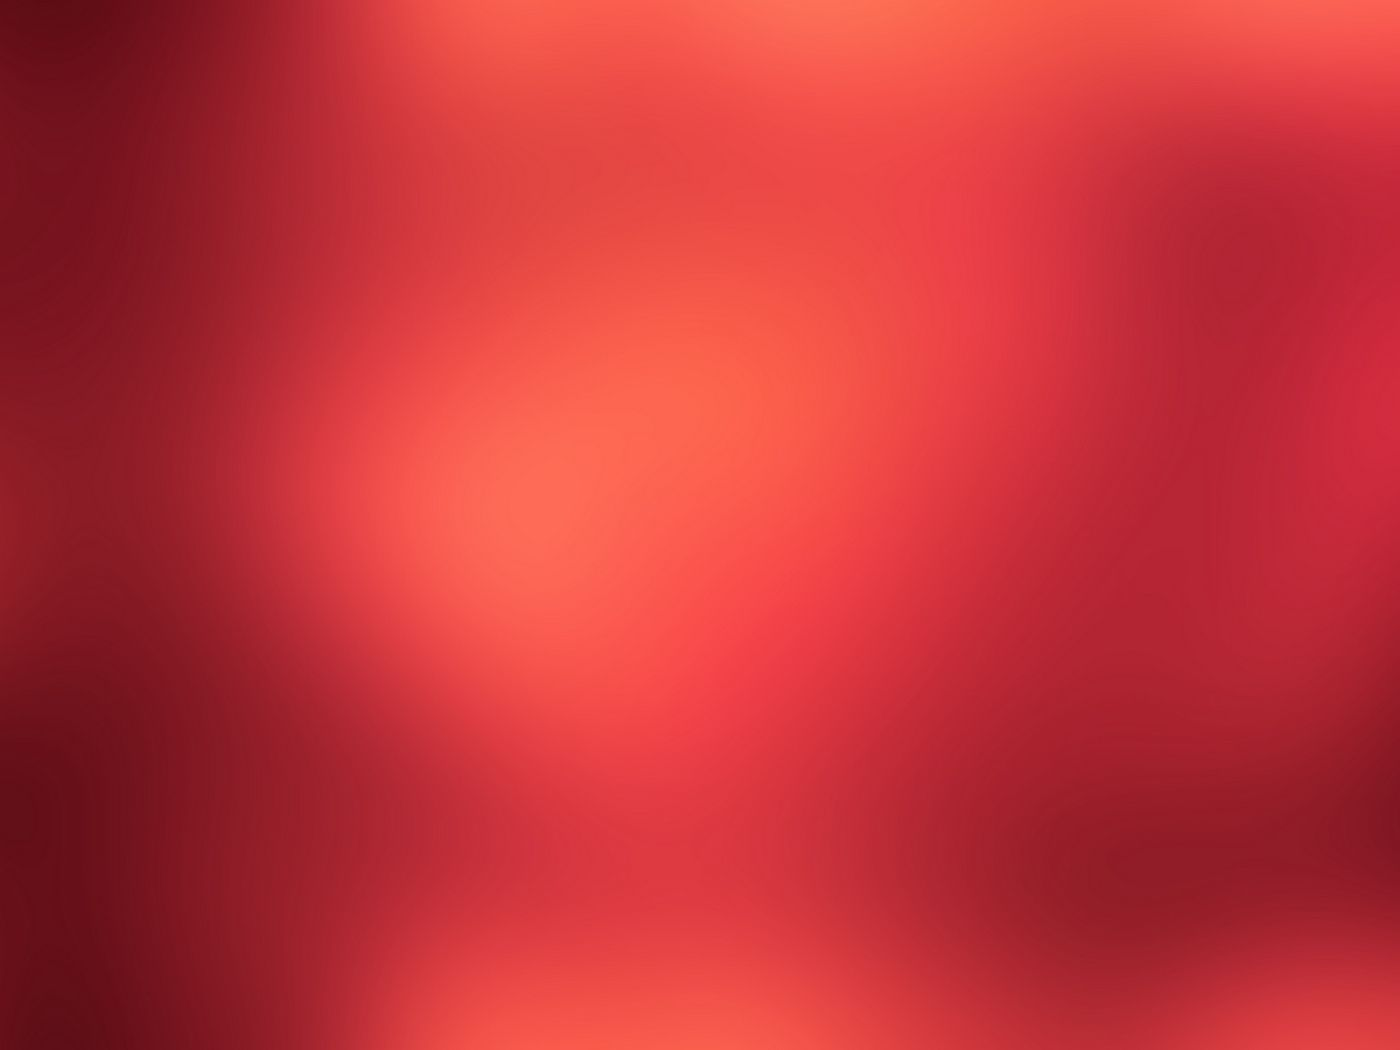 1400x1050 Download wallpaper 1400x1050 solid, red, bright, shiny ...